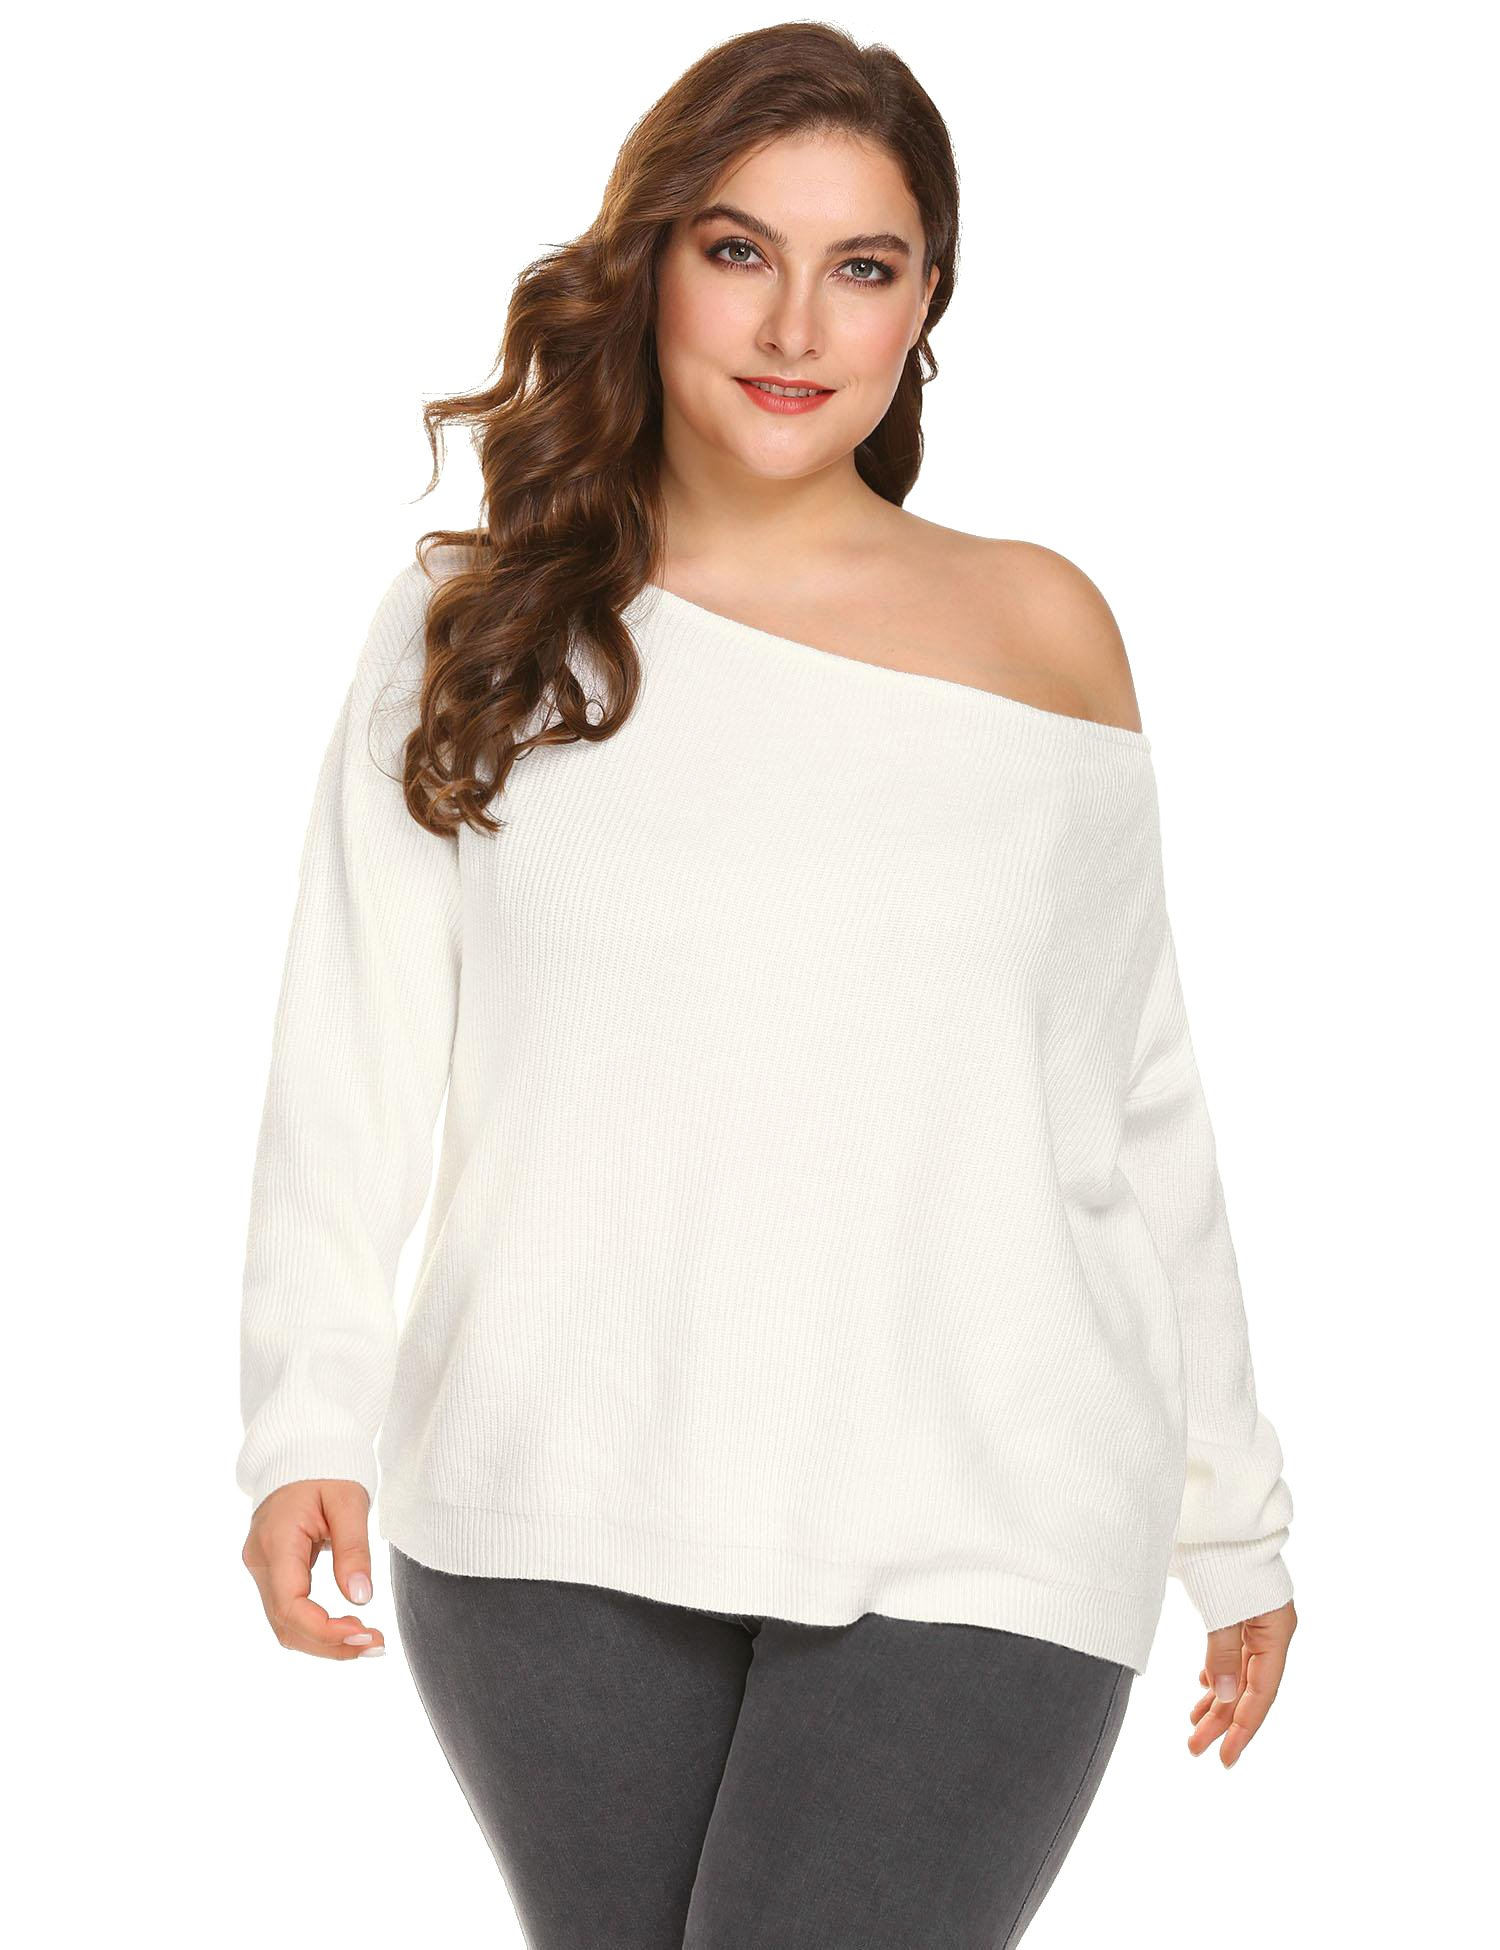 VPICUO Womens Plus Size Sweater Cold Shoulder Knit Tops Sexy Off Shoulder Slouchy Oversized Pullover Sweaters